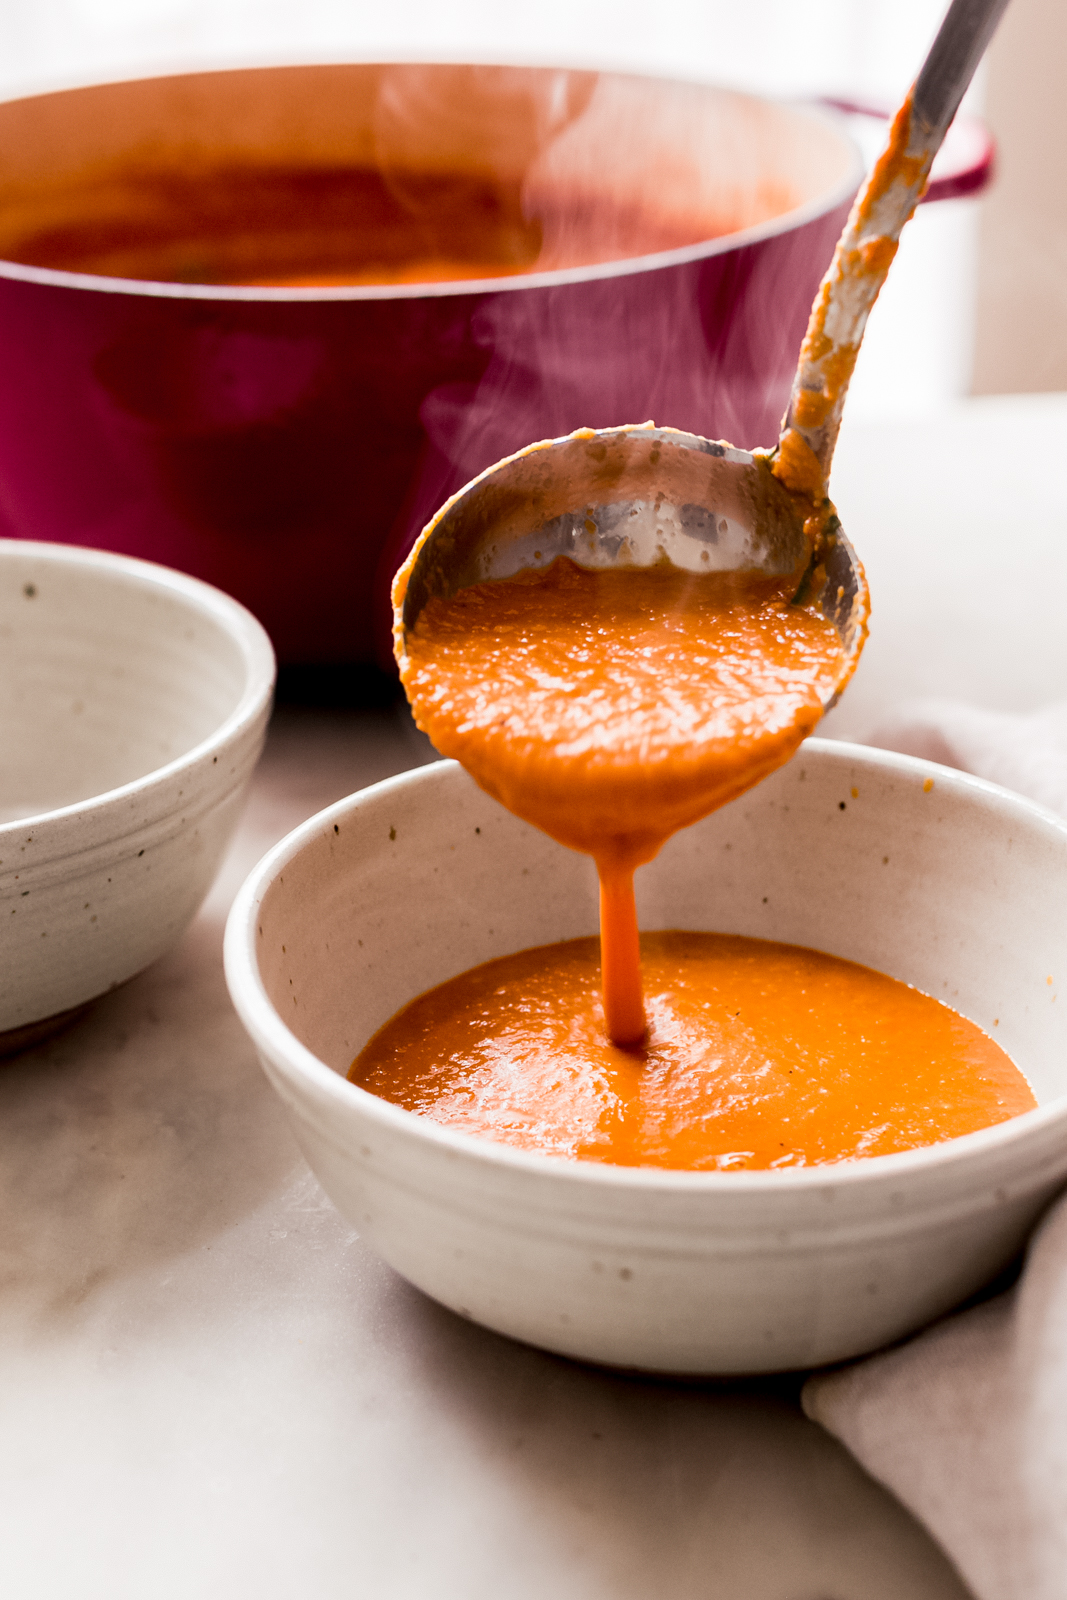 pouring a ladleful of roasted tomato soup into a bowl